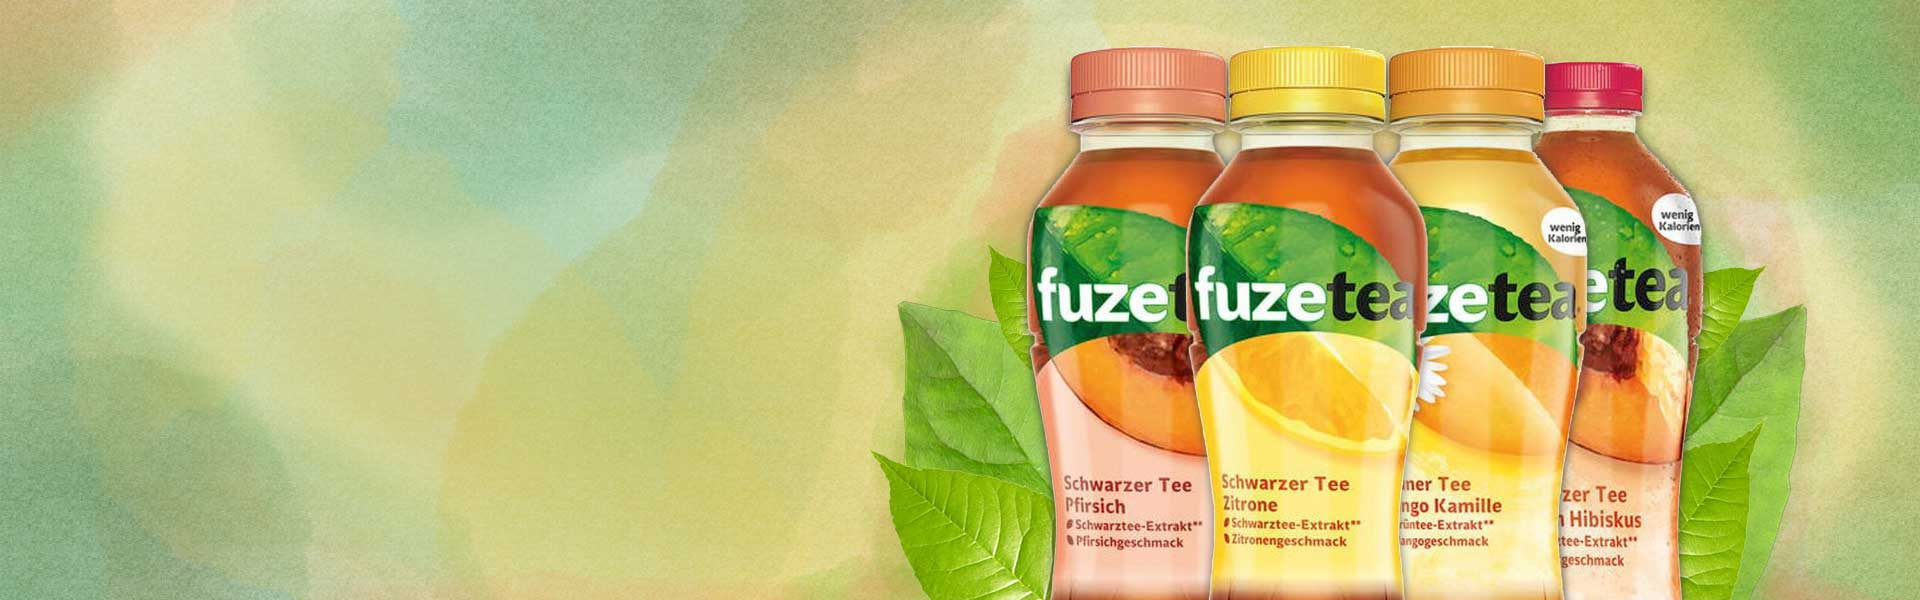 FUZE TEA AUF USA-DRINKS